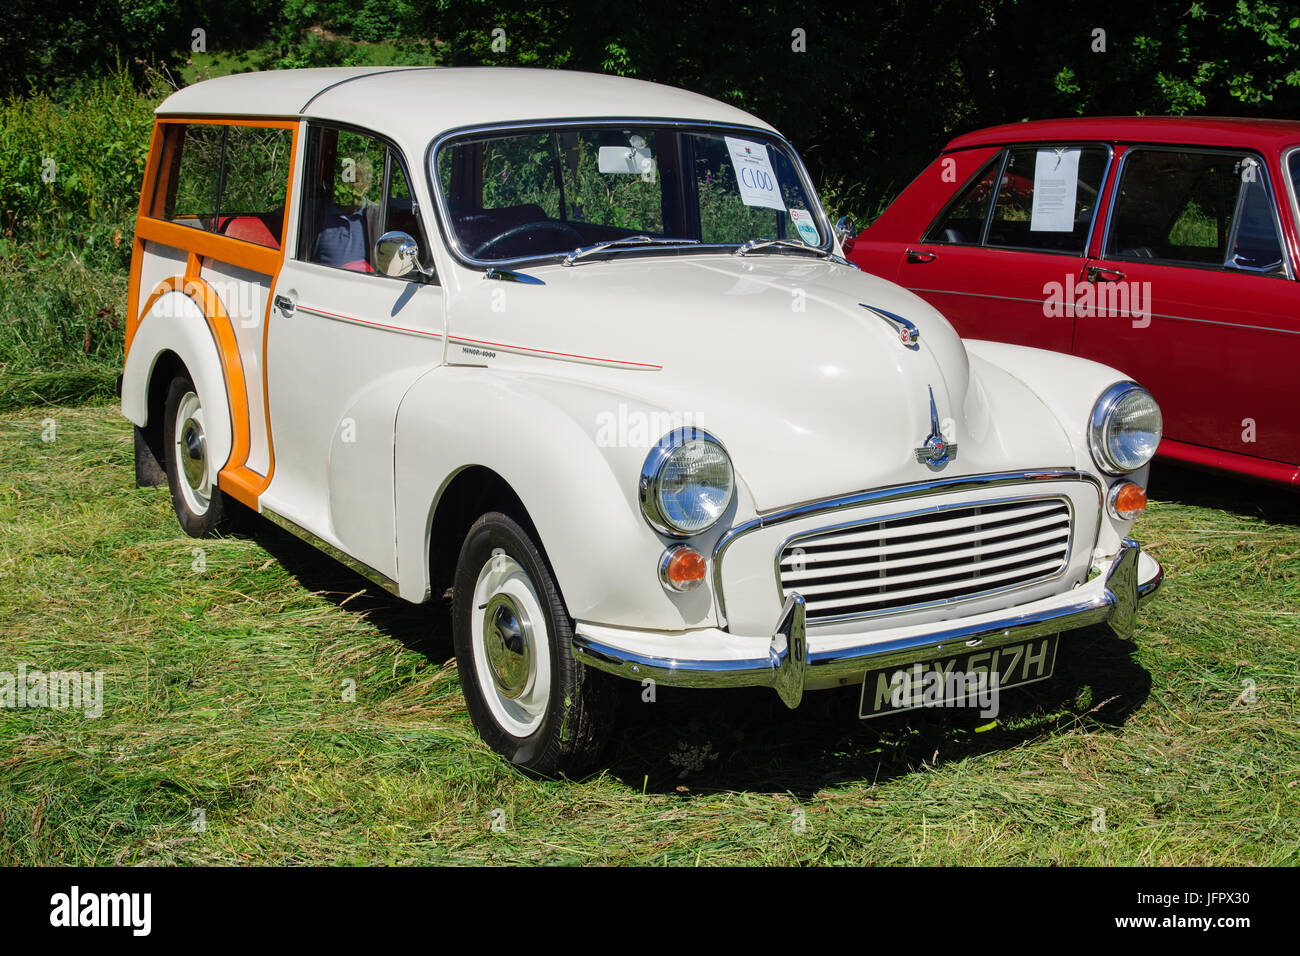 Morris Minor 1000 Traveller a classic British shooting brake car built from 1948 to 1972 with it's traditional - Stock Image